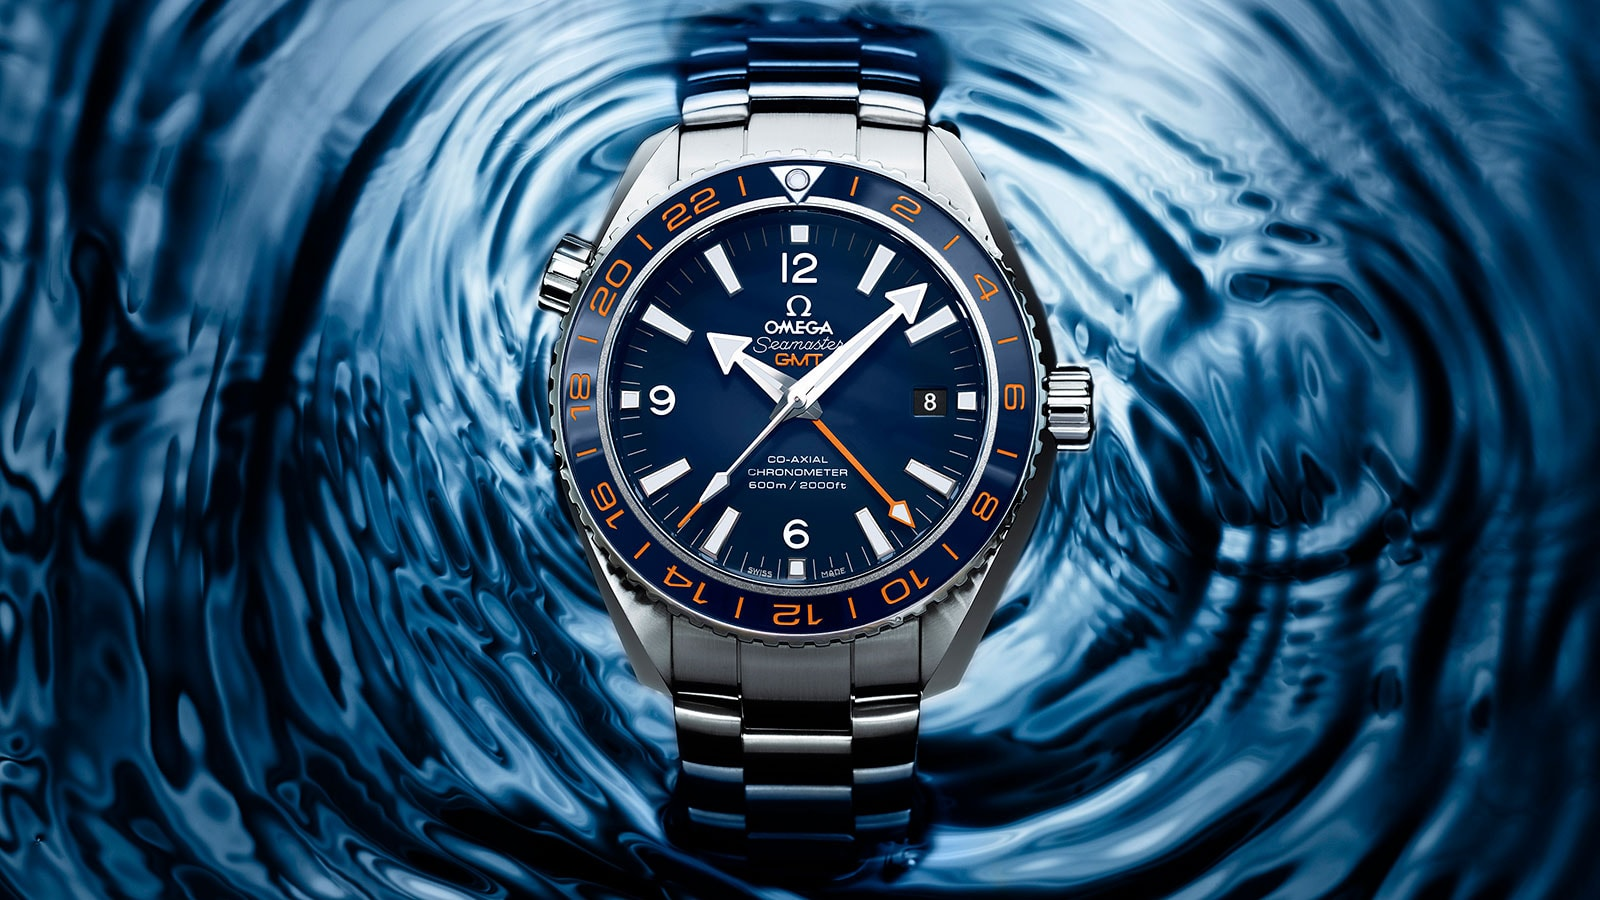 Seamaster Planet Ocean 600M Planet Ocean 600M Omega Co‑axial GMT 43.5 mm Watch - 232.30.44.22.03.001